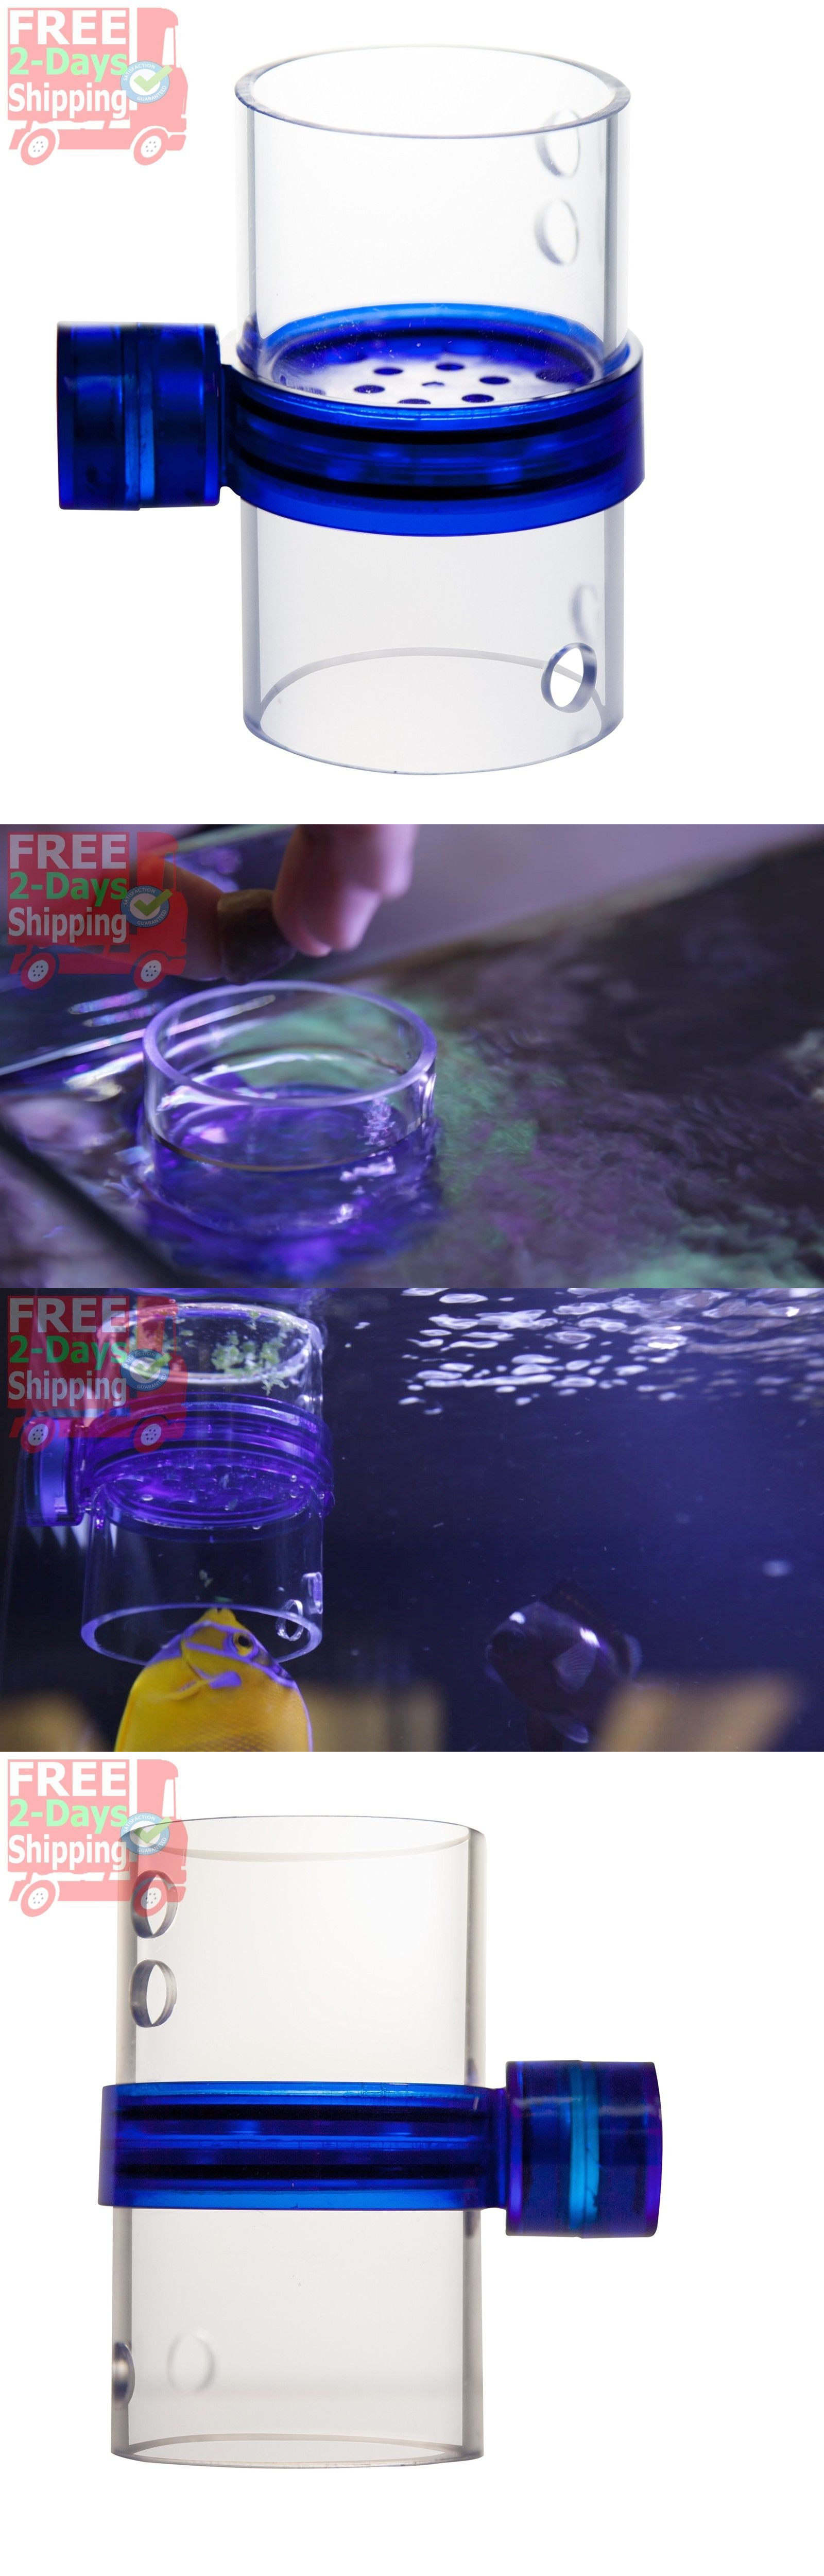 for anglefish aquarium automatic angel tank pin feeder food tantra fish nemo